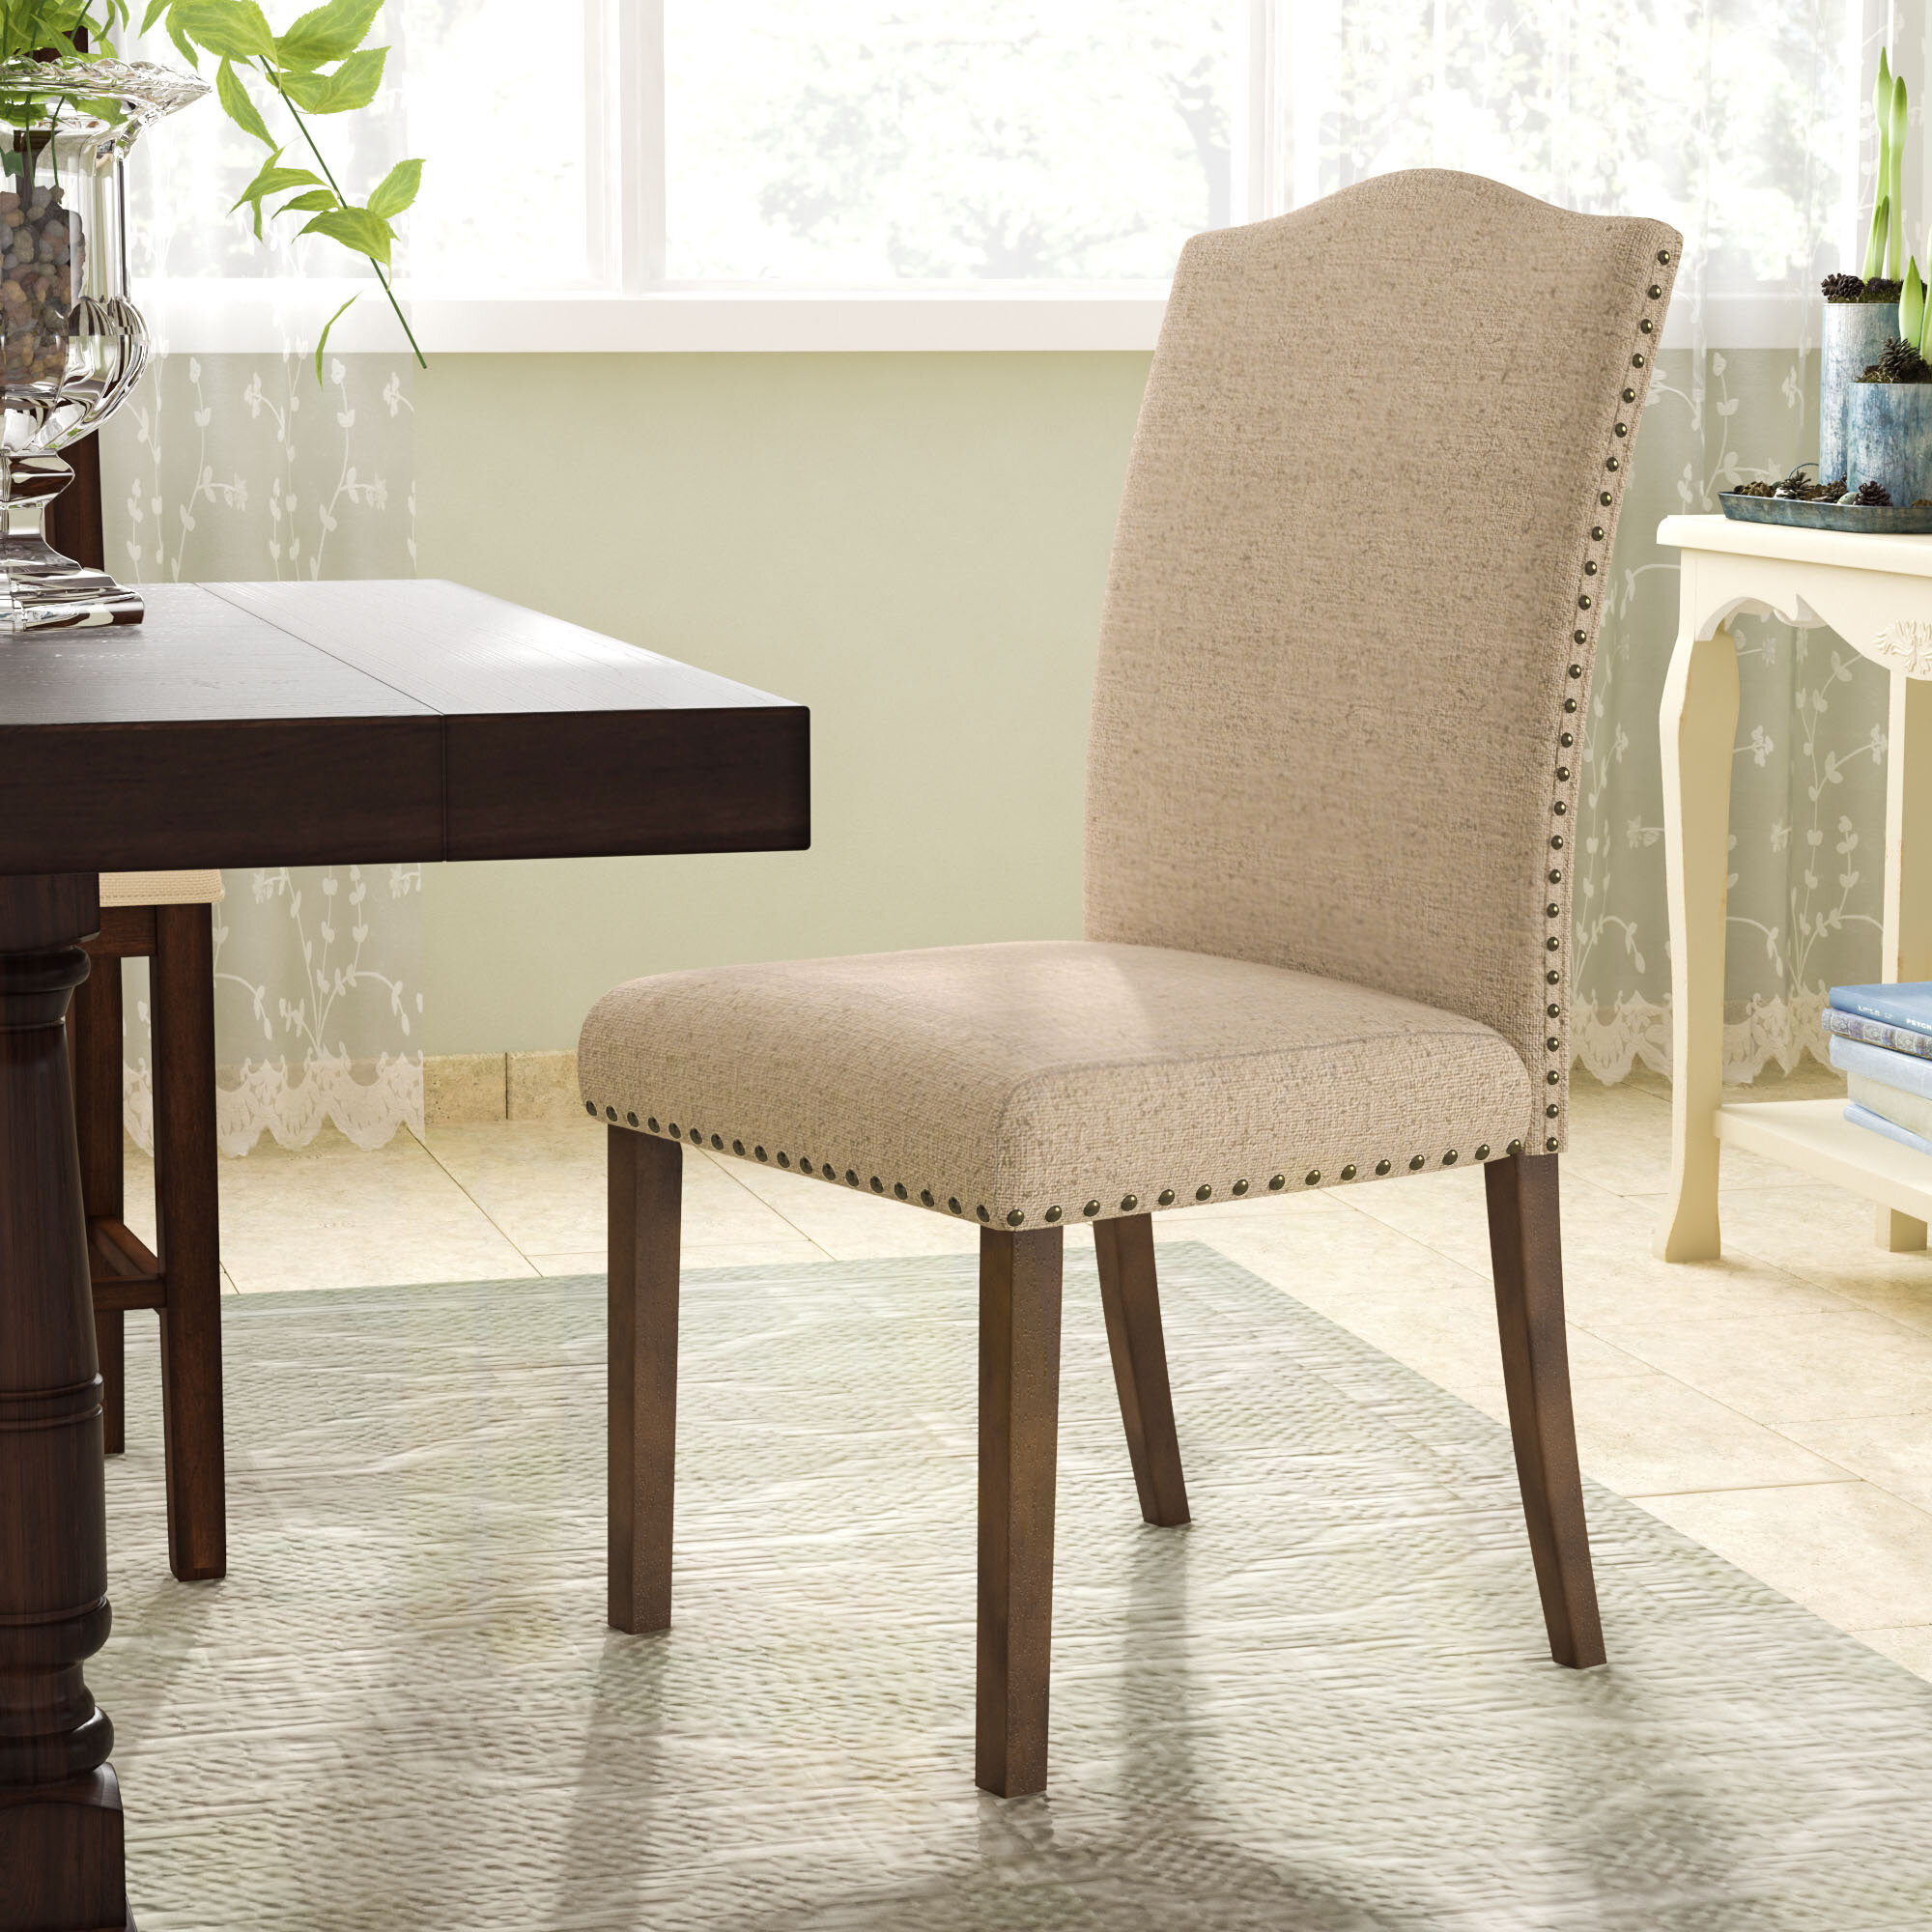 Awe Inspiring Baylor Stool Wayfair Gmtry Best Dining Table And Chair Ideas Images Gmtryco